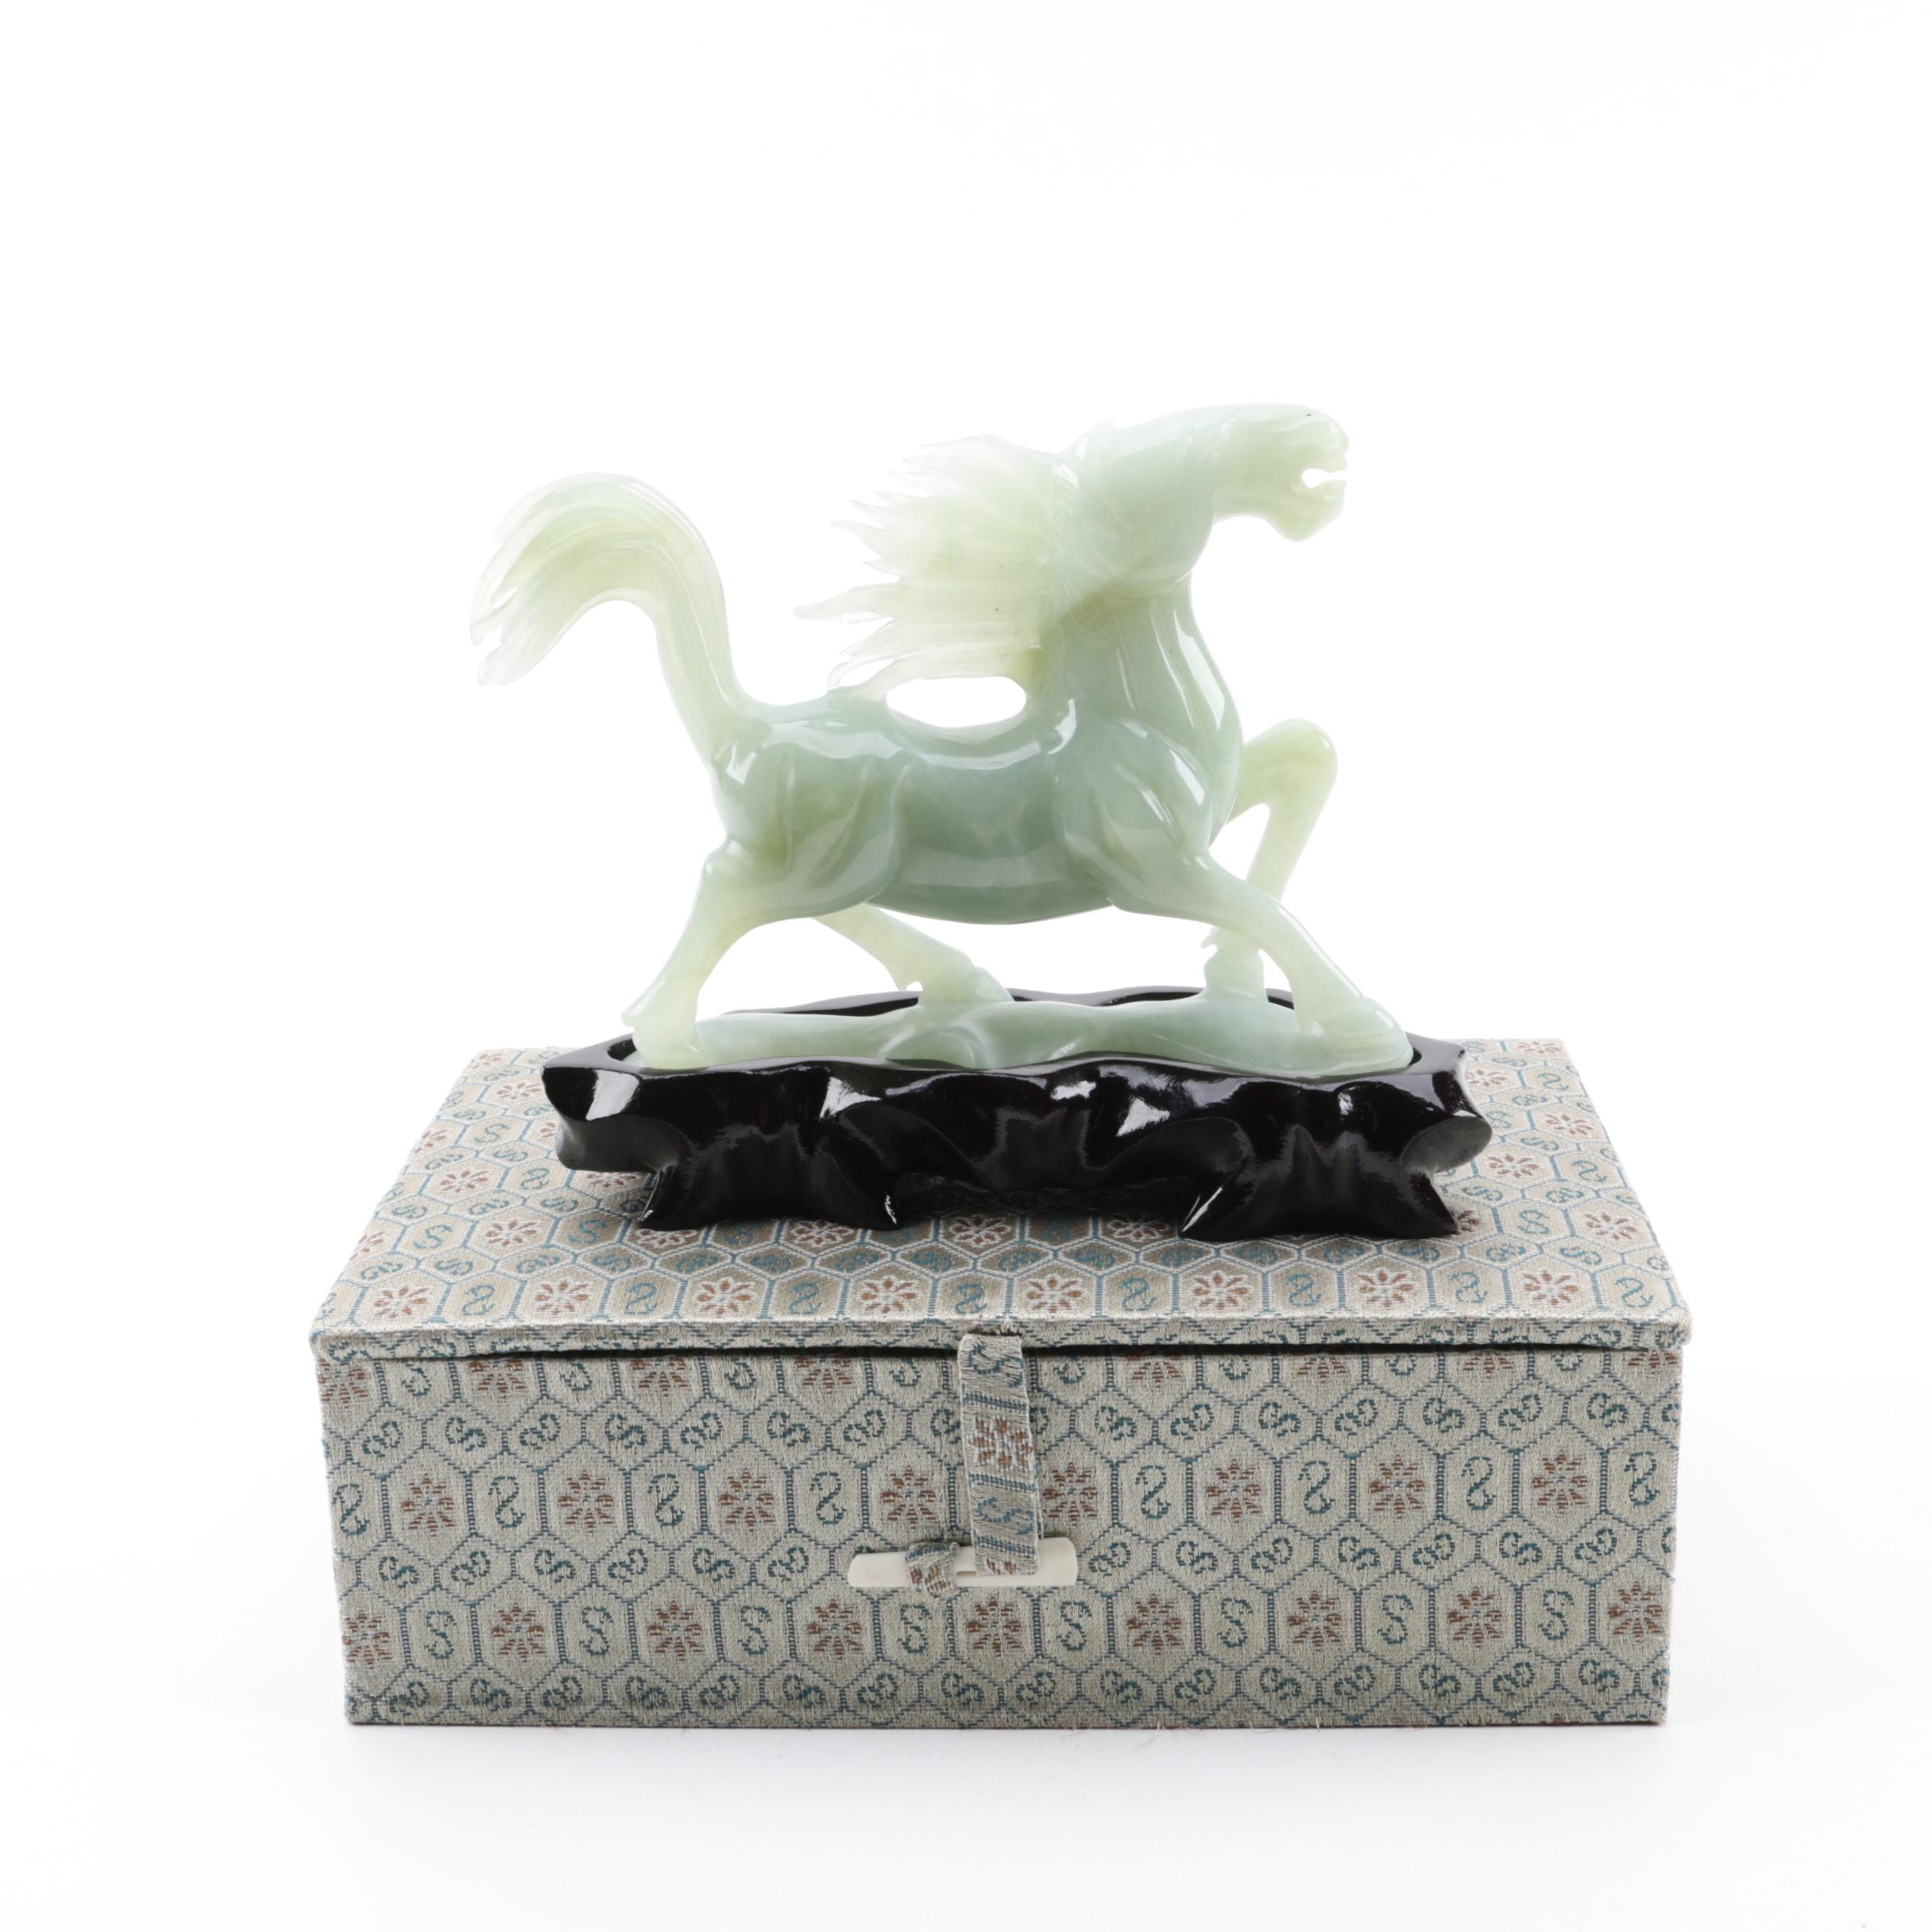 Chinese Carved Bowenite Horse Figurine with Wooden Stand and Case